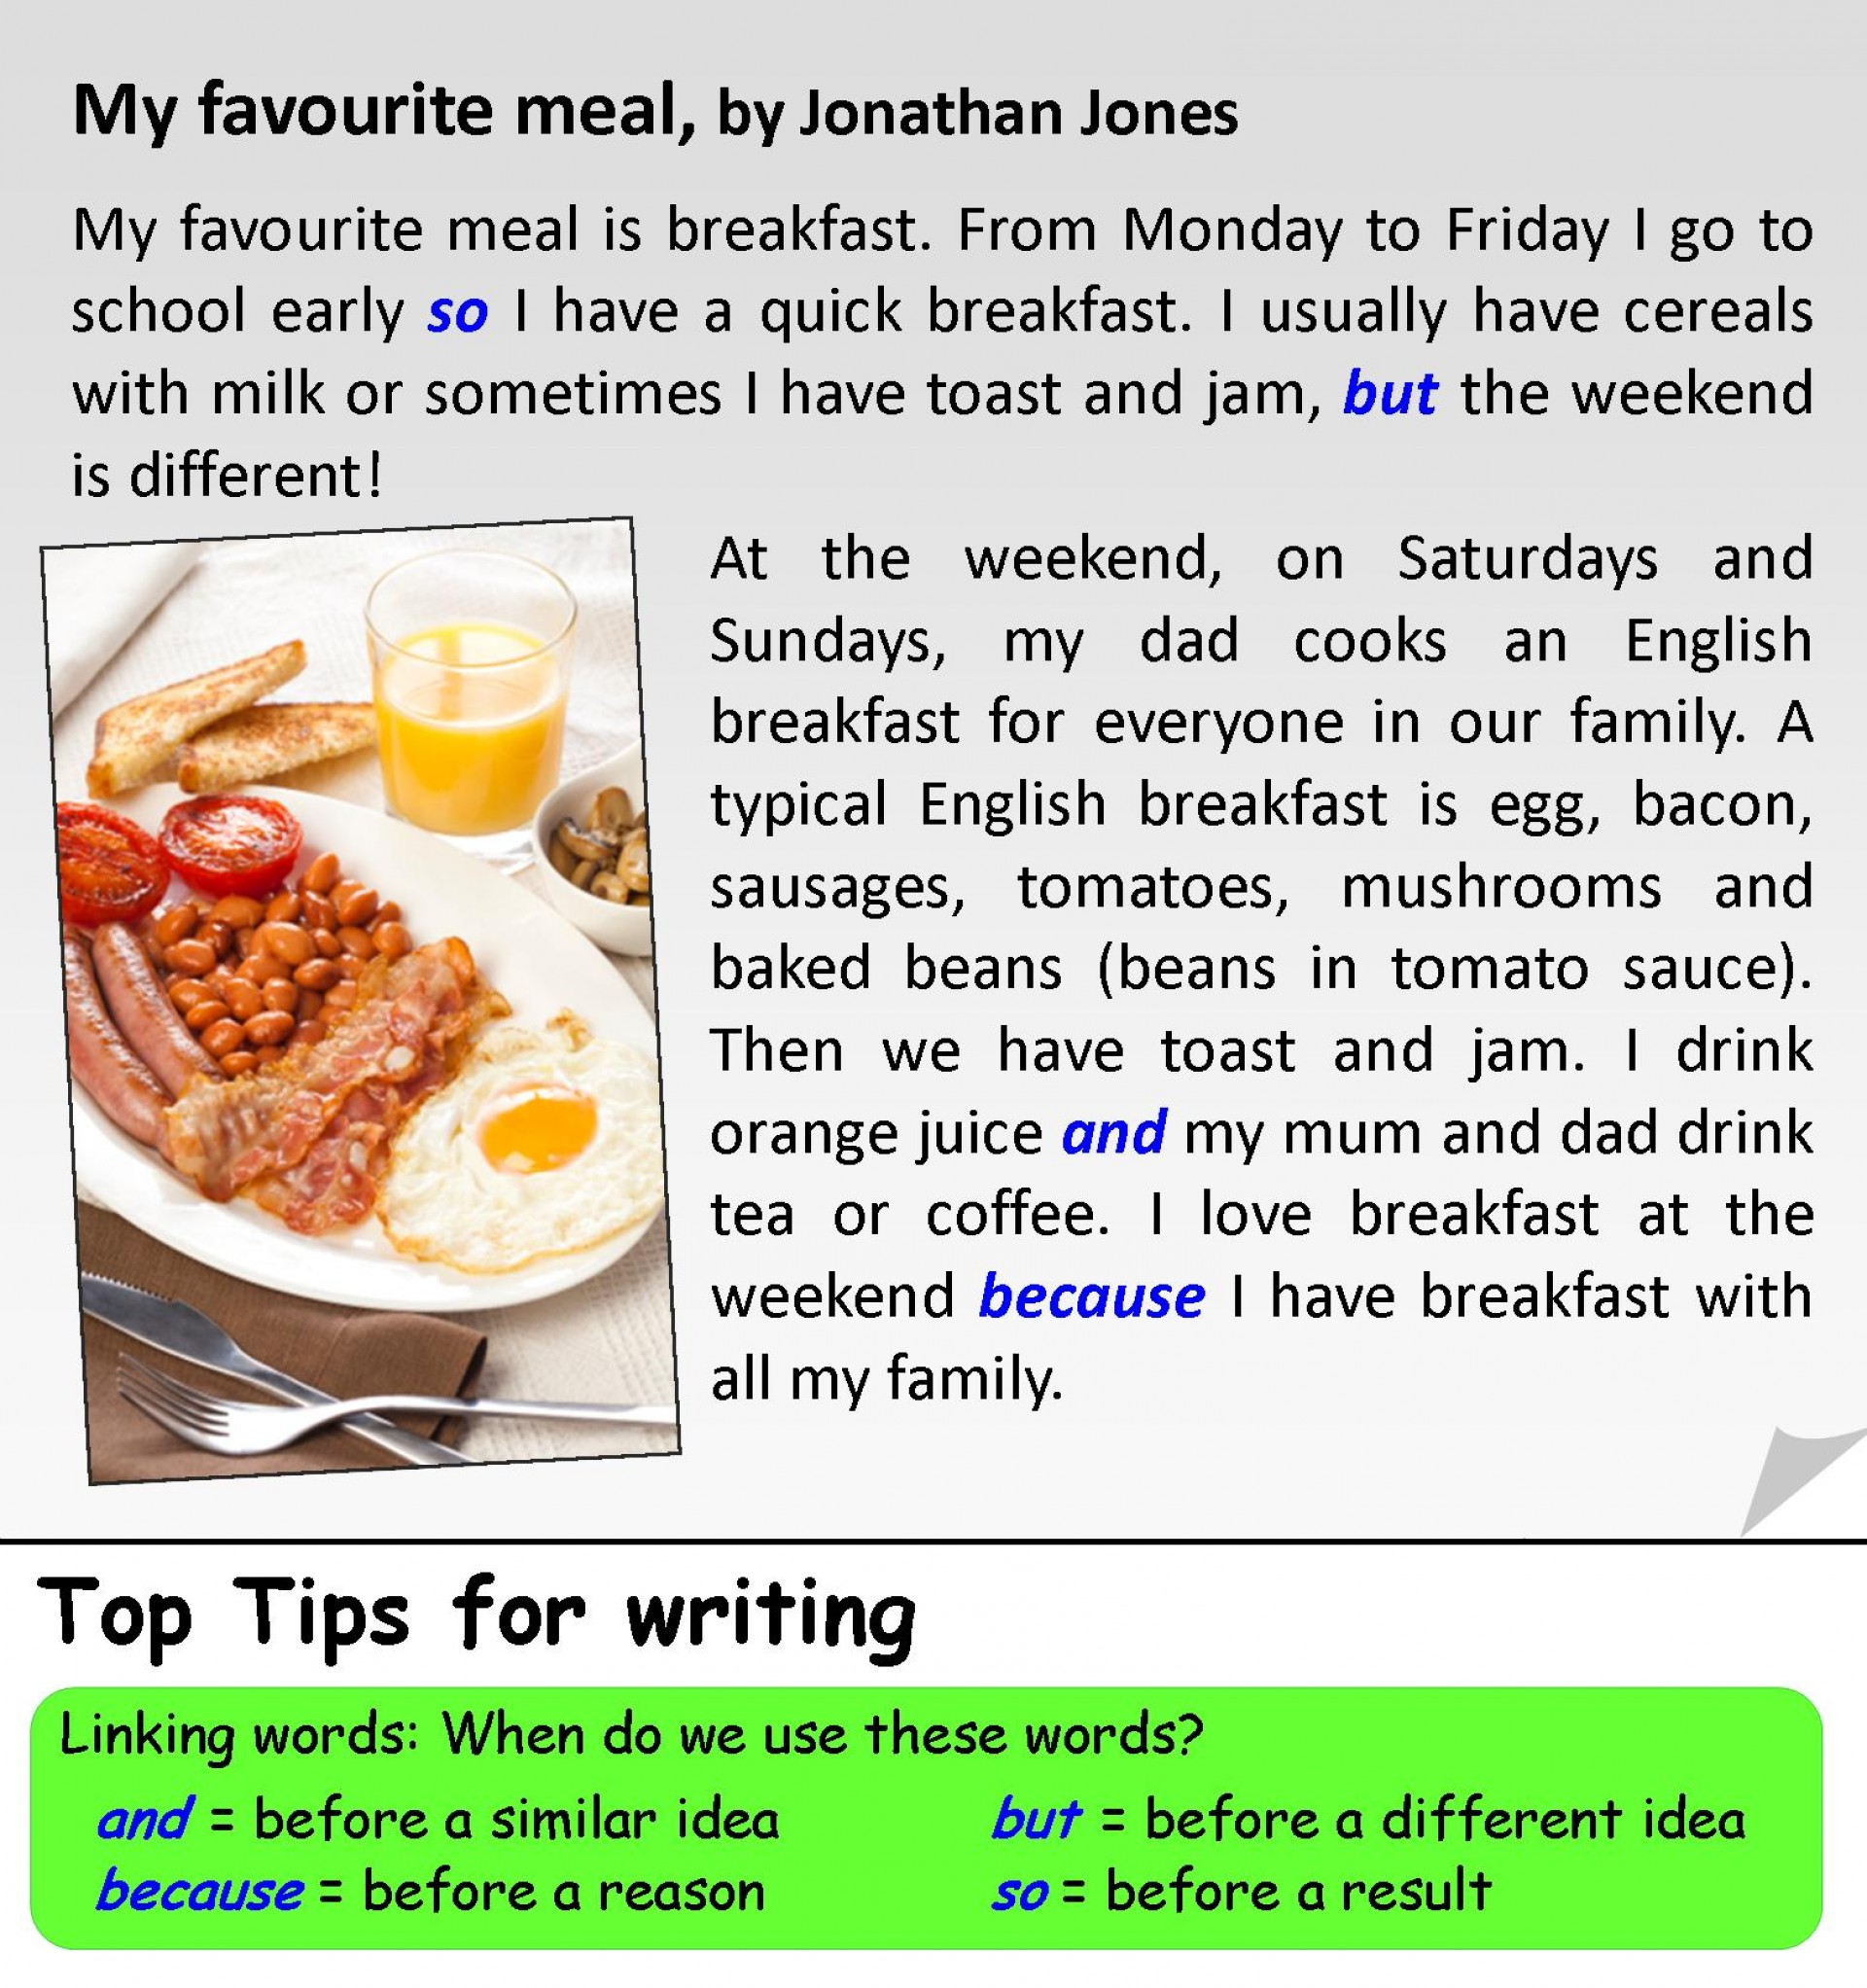 004 My Favourite Meal V5 Better Text 2 Essay Example